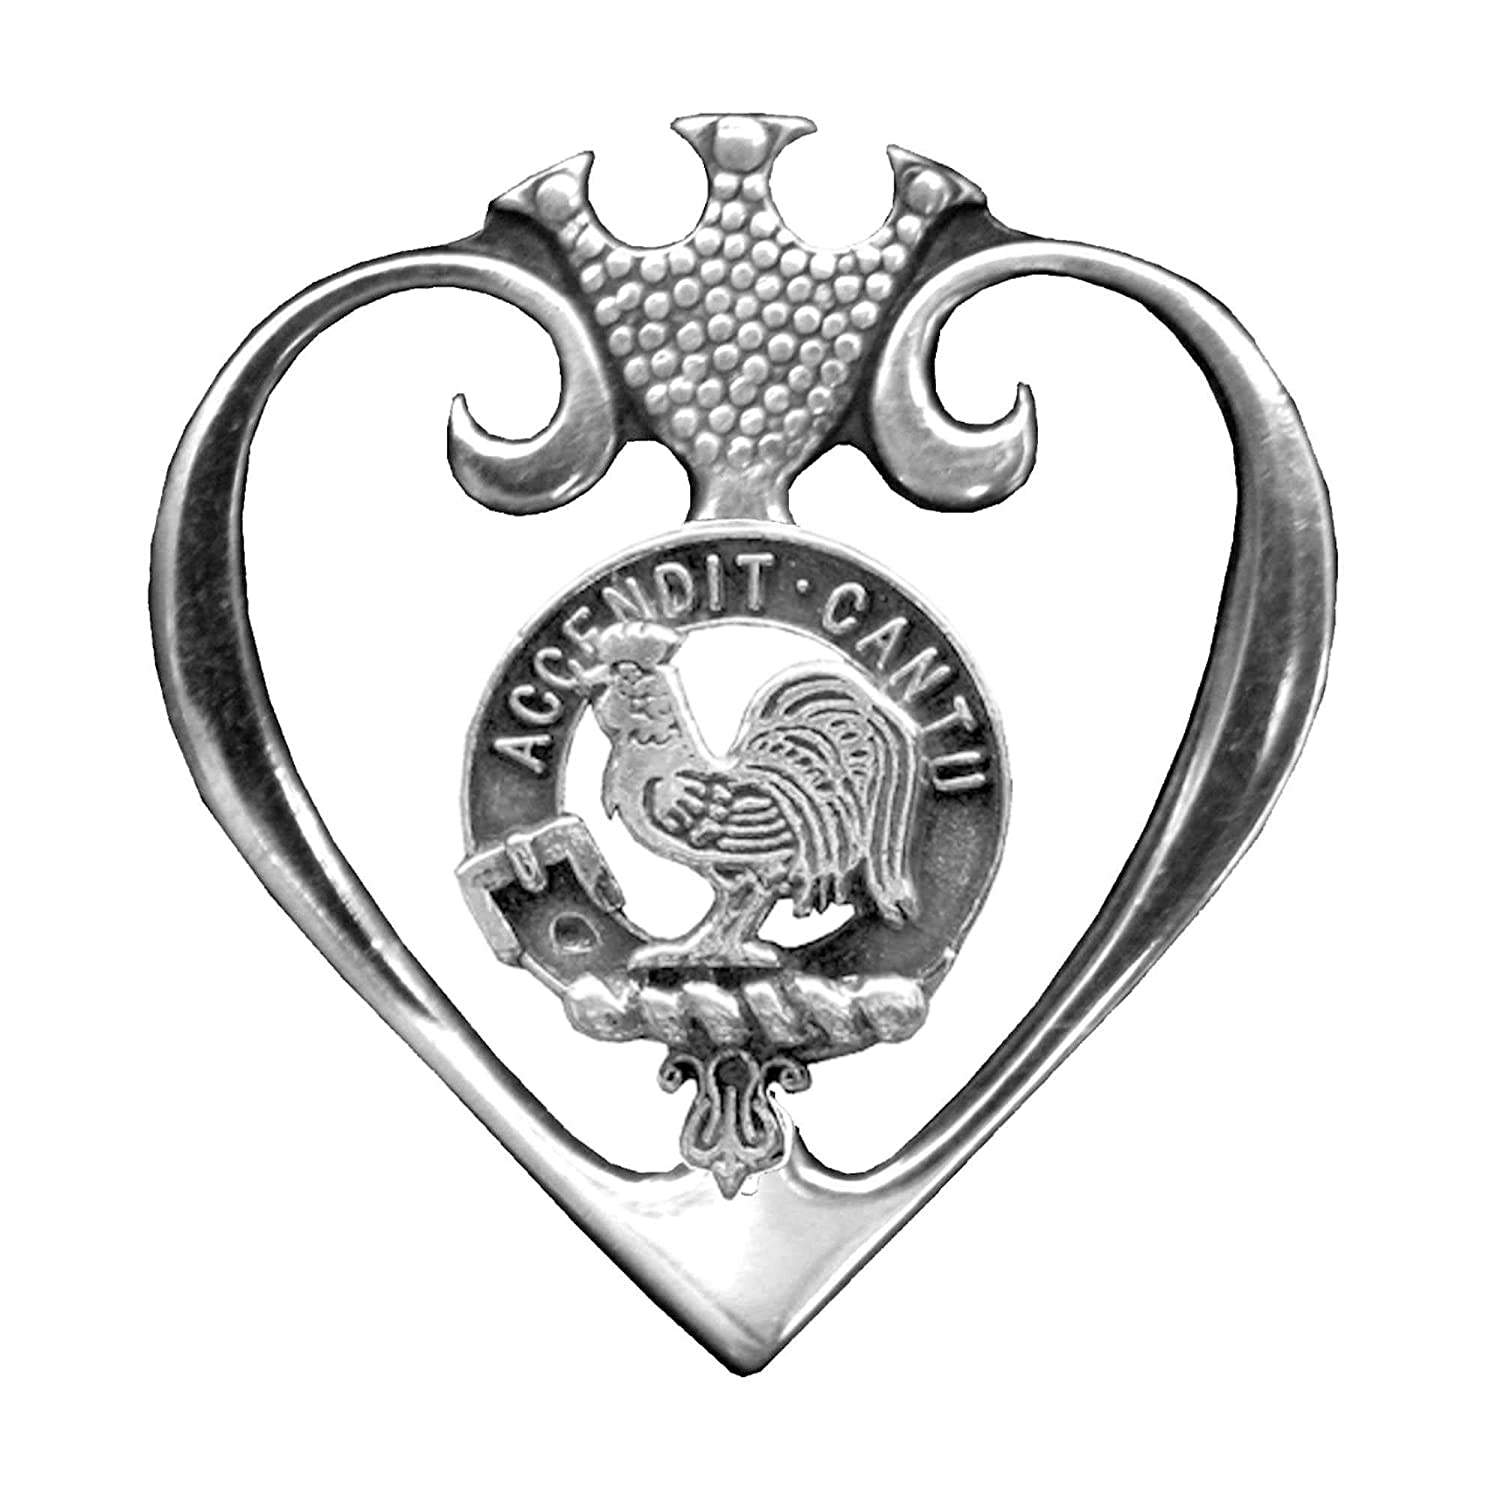 New color Selling and selling Cockburn Clan Luckenbooth Brooch